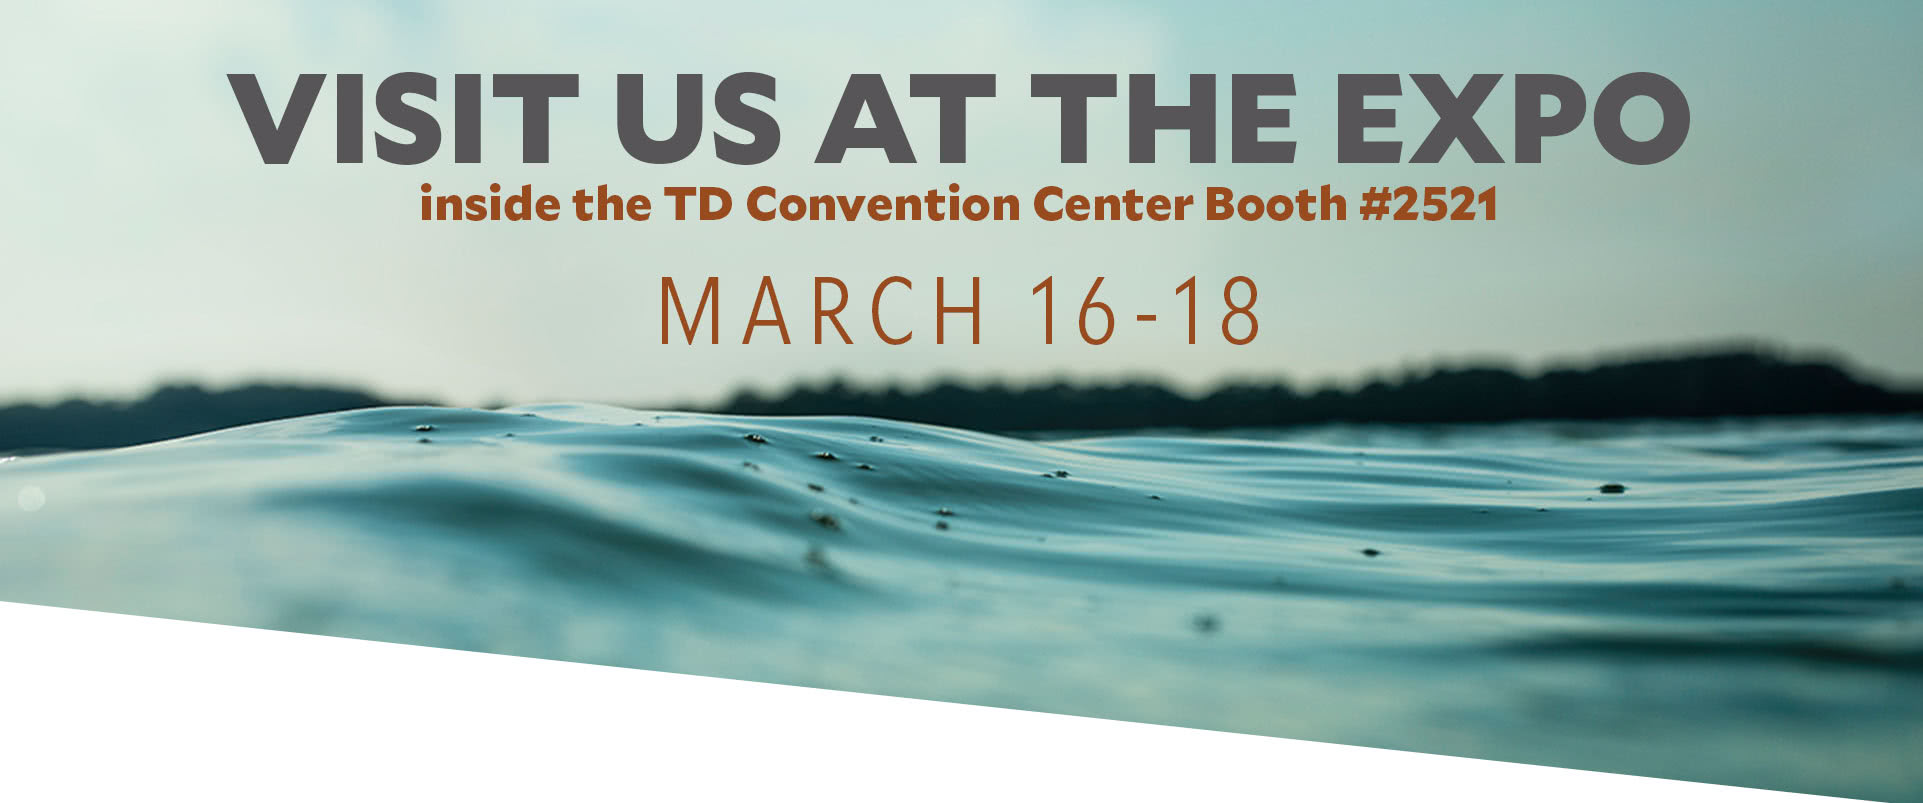 2018 Expo | March 16-18 TD Convention Center Visit Us At Booth Number: 2521 - Come Meet The Pros